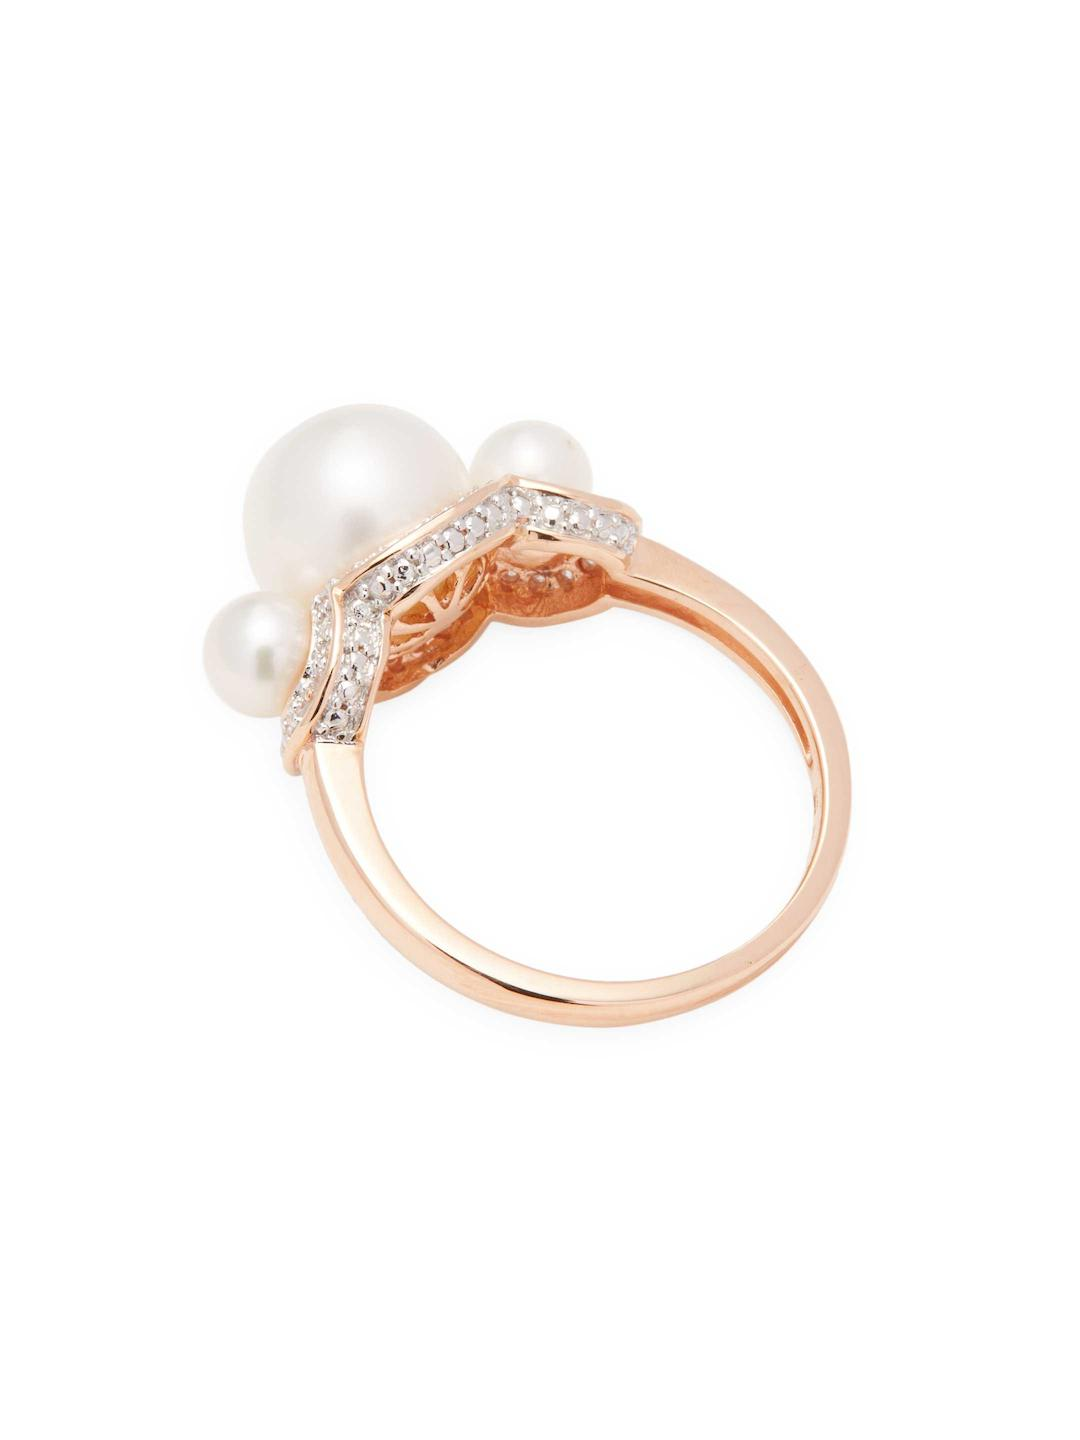 Rina Limor 10k Rose Gold Freshwater Cultured Pearl 3-stone Ring With Diamond Halo